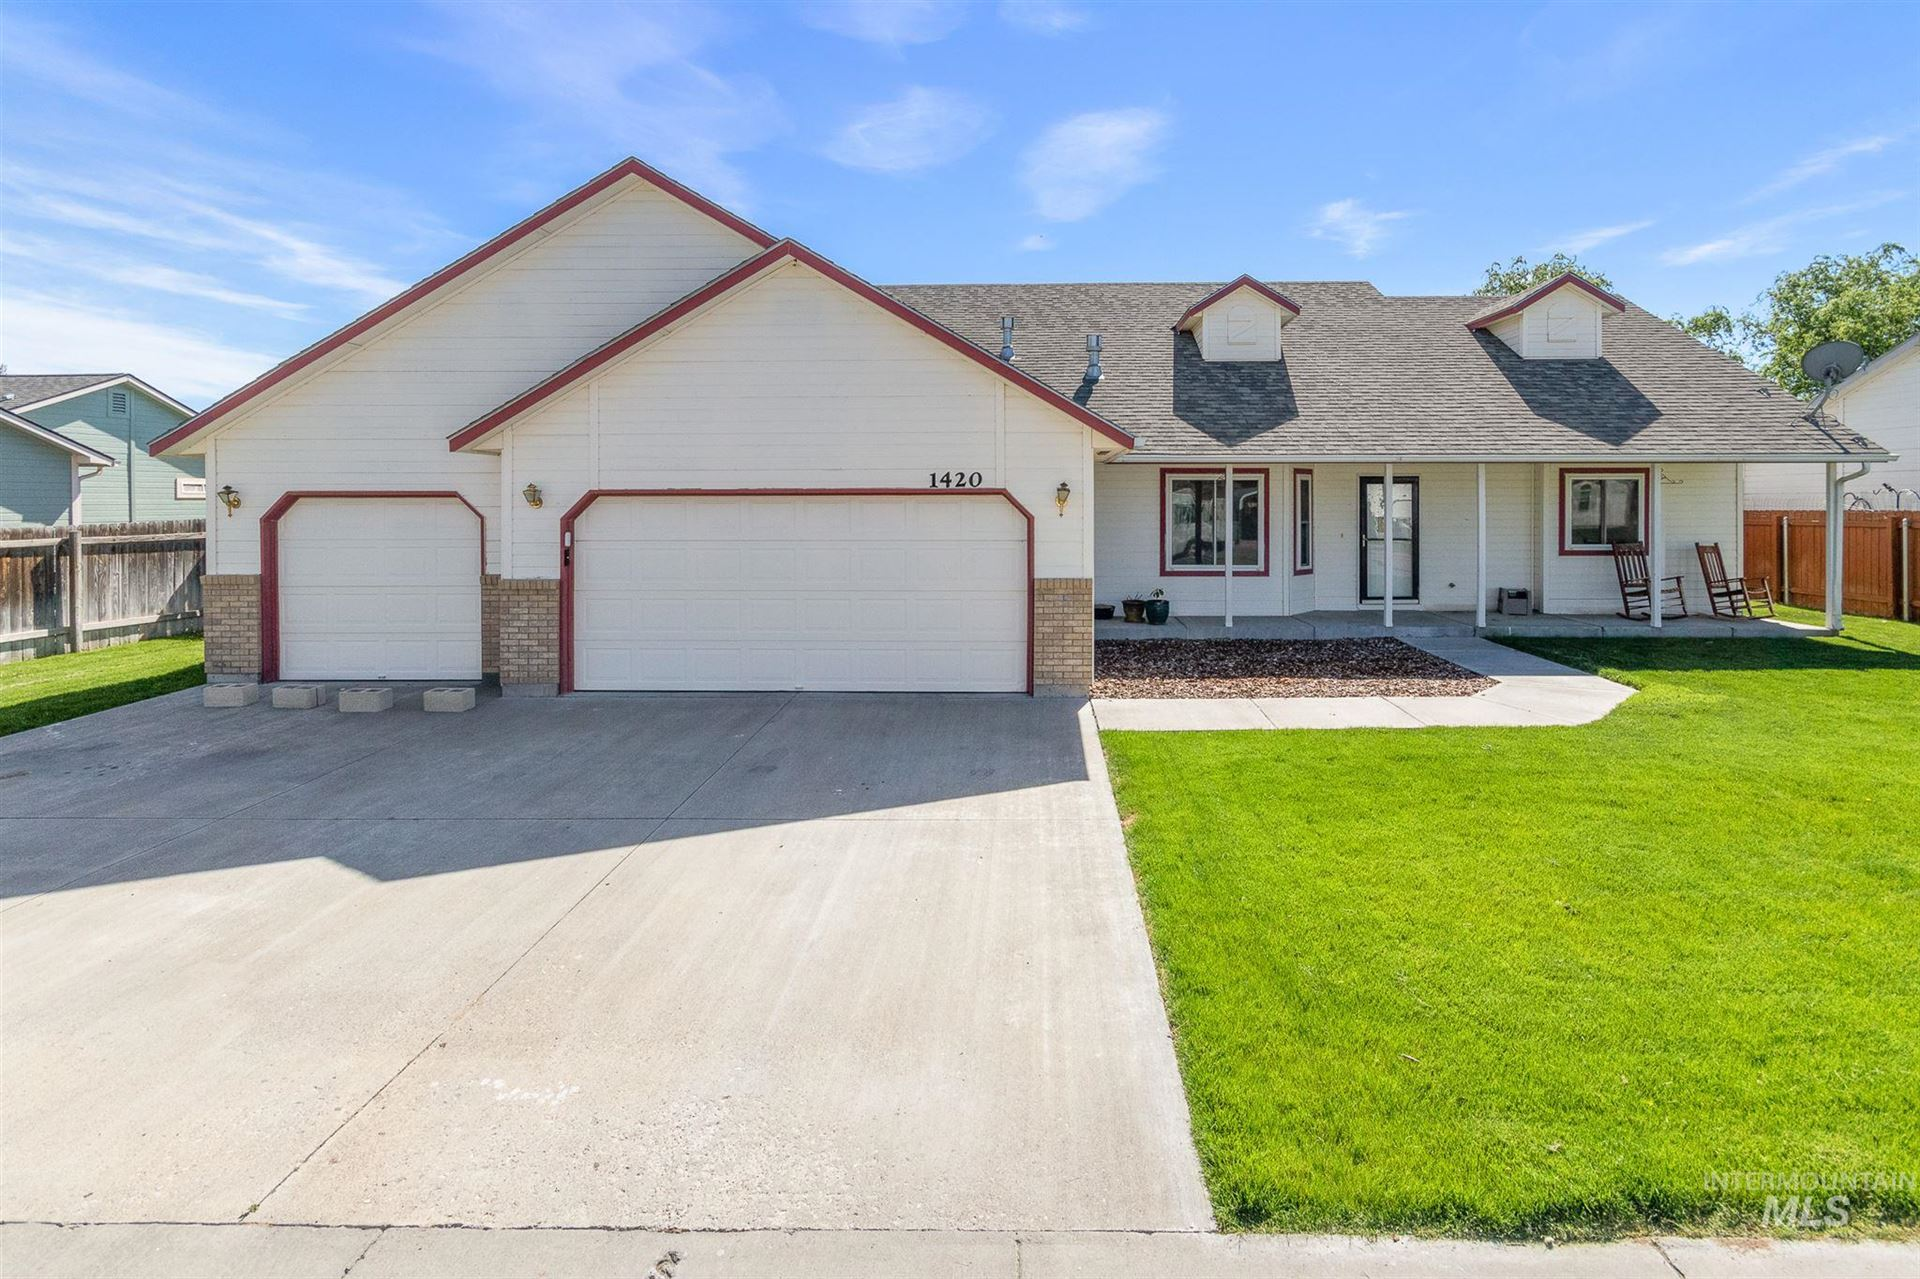 1420 Kyle St, Mountain Home, ID 83647 - MLS#: 98769150